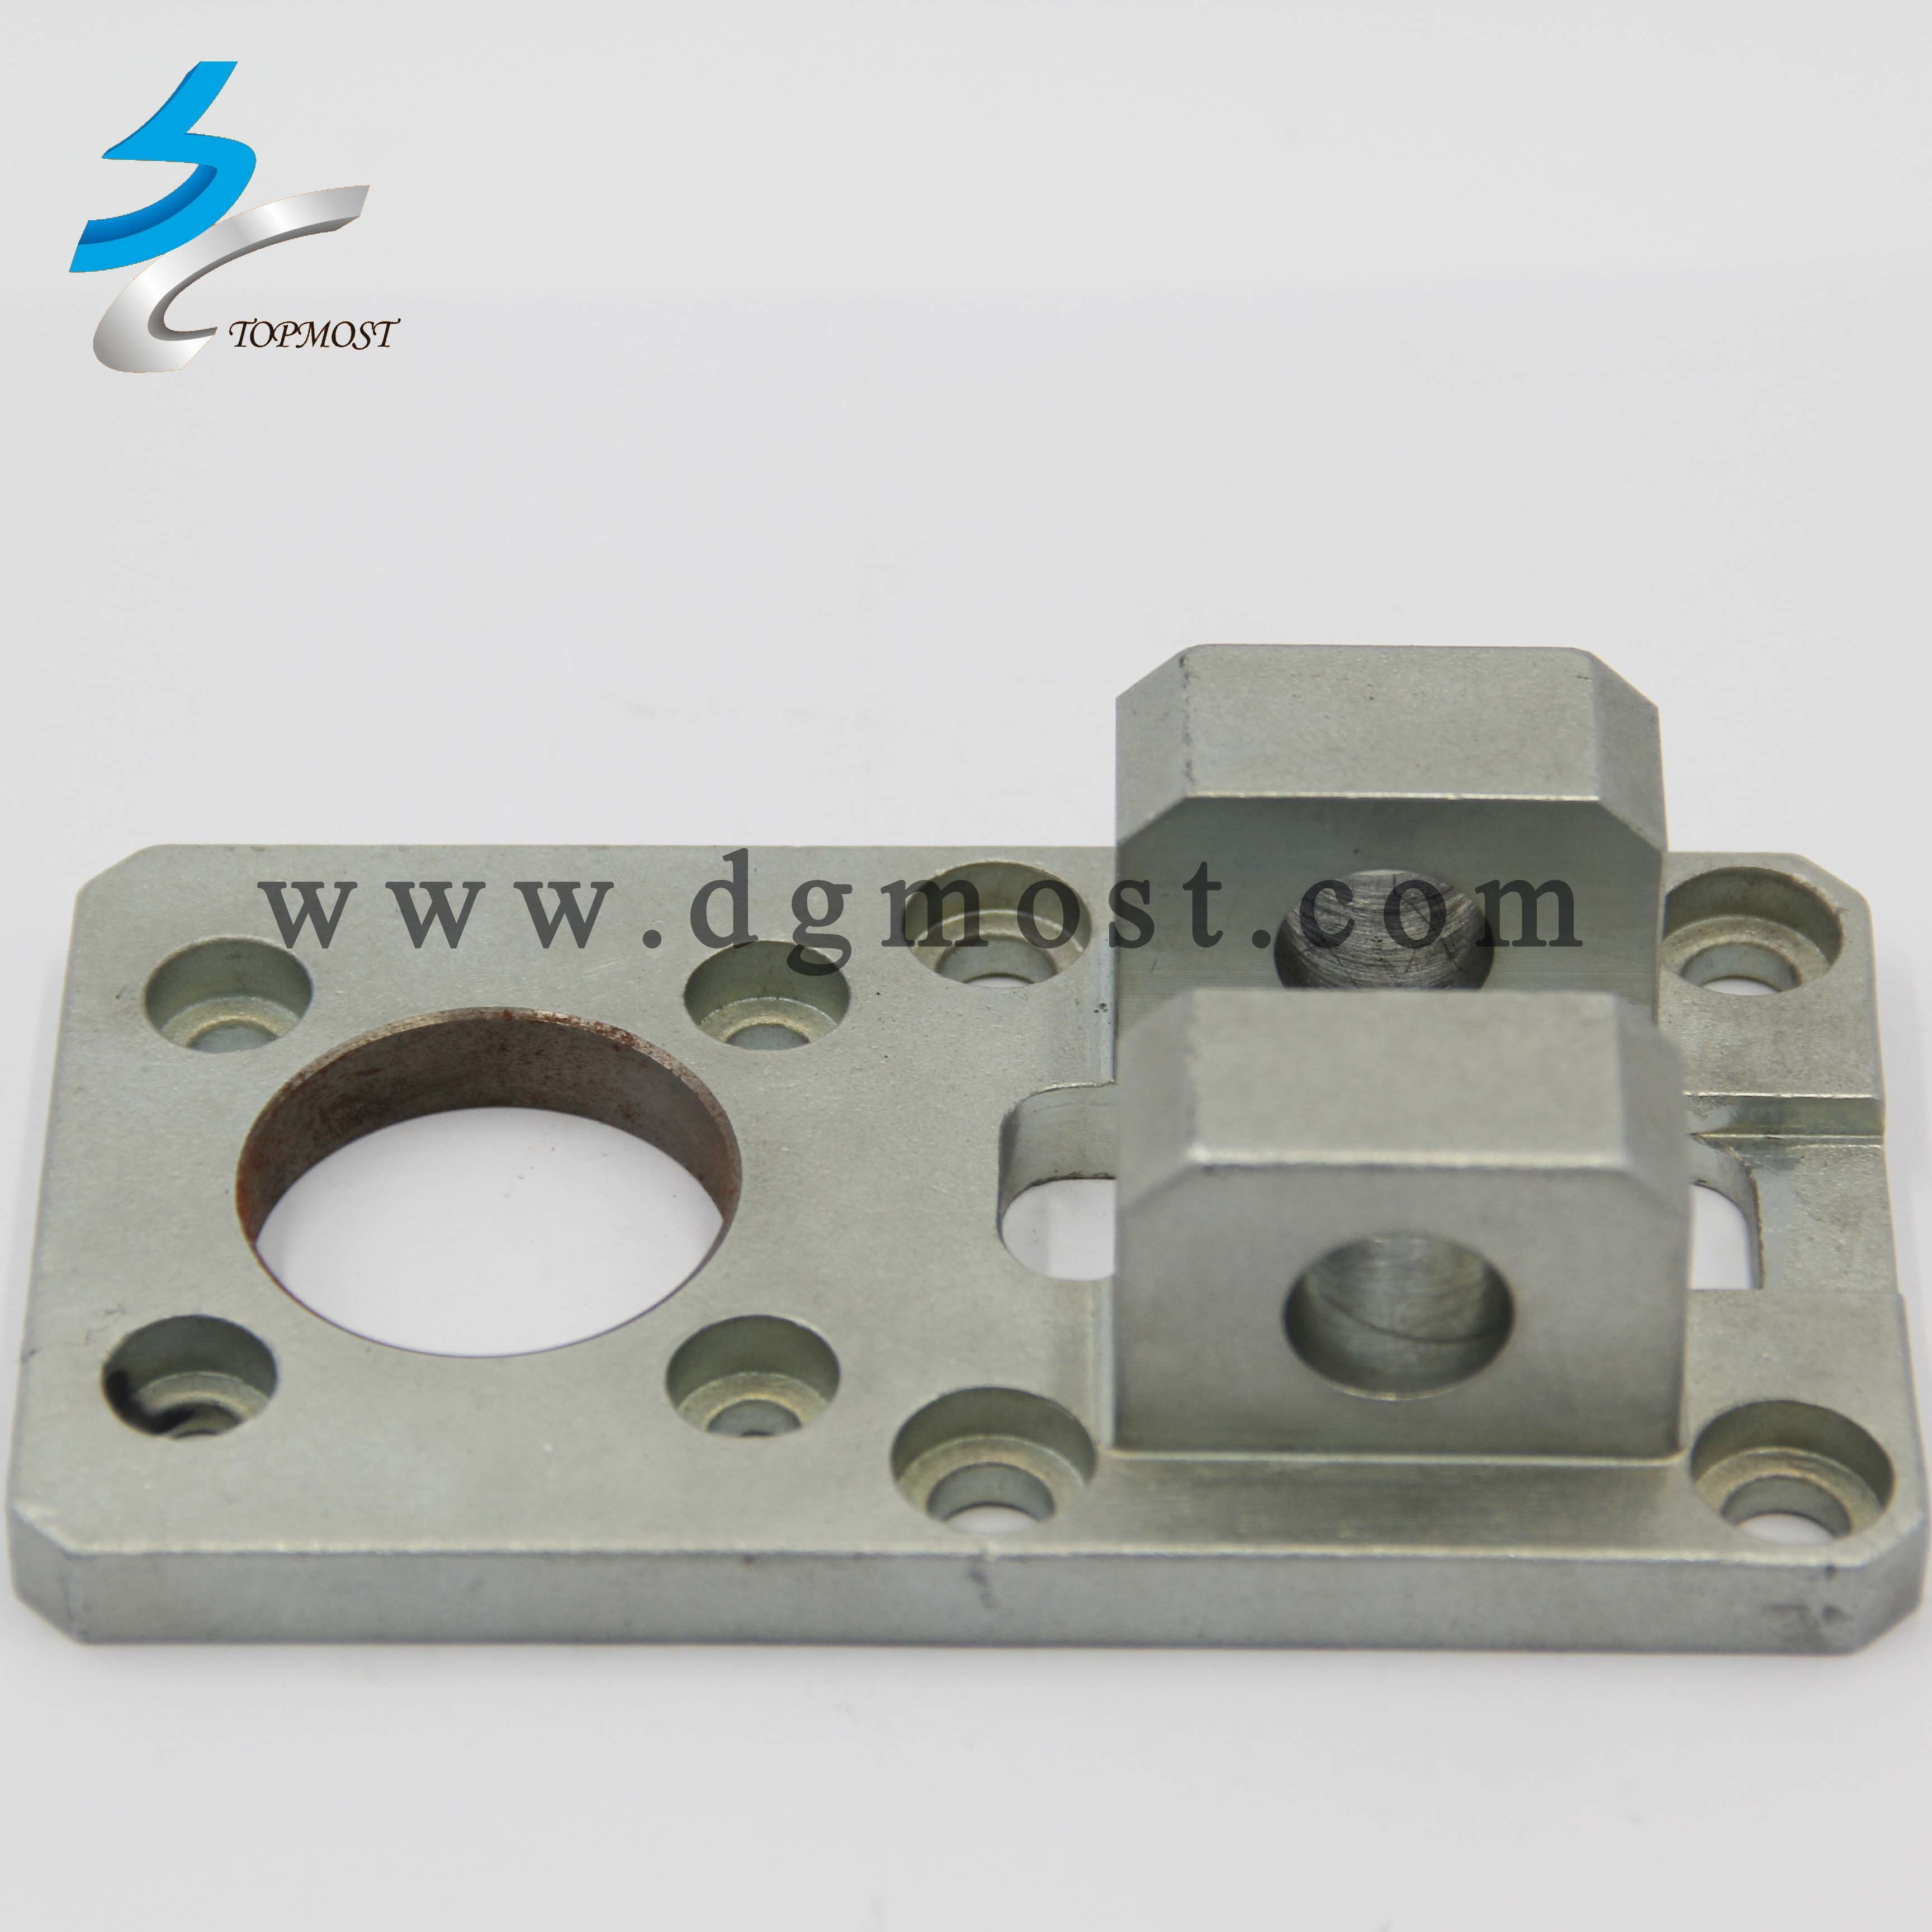 China Supplier Investment Casting Hardware Stainless Steel Glass Clamp